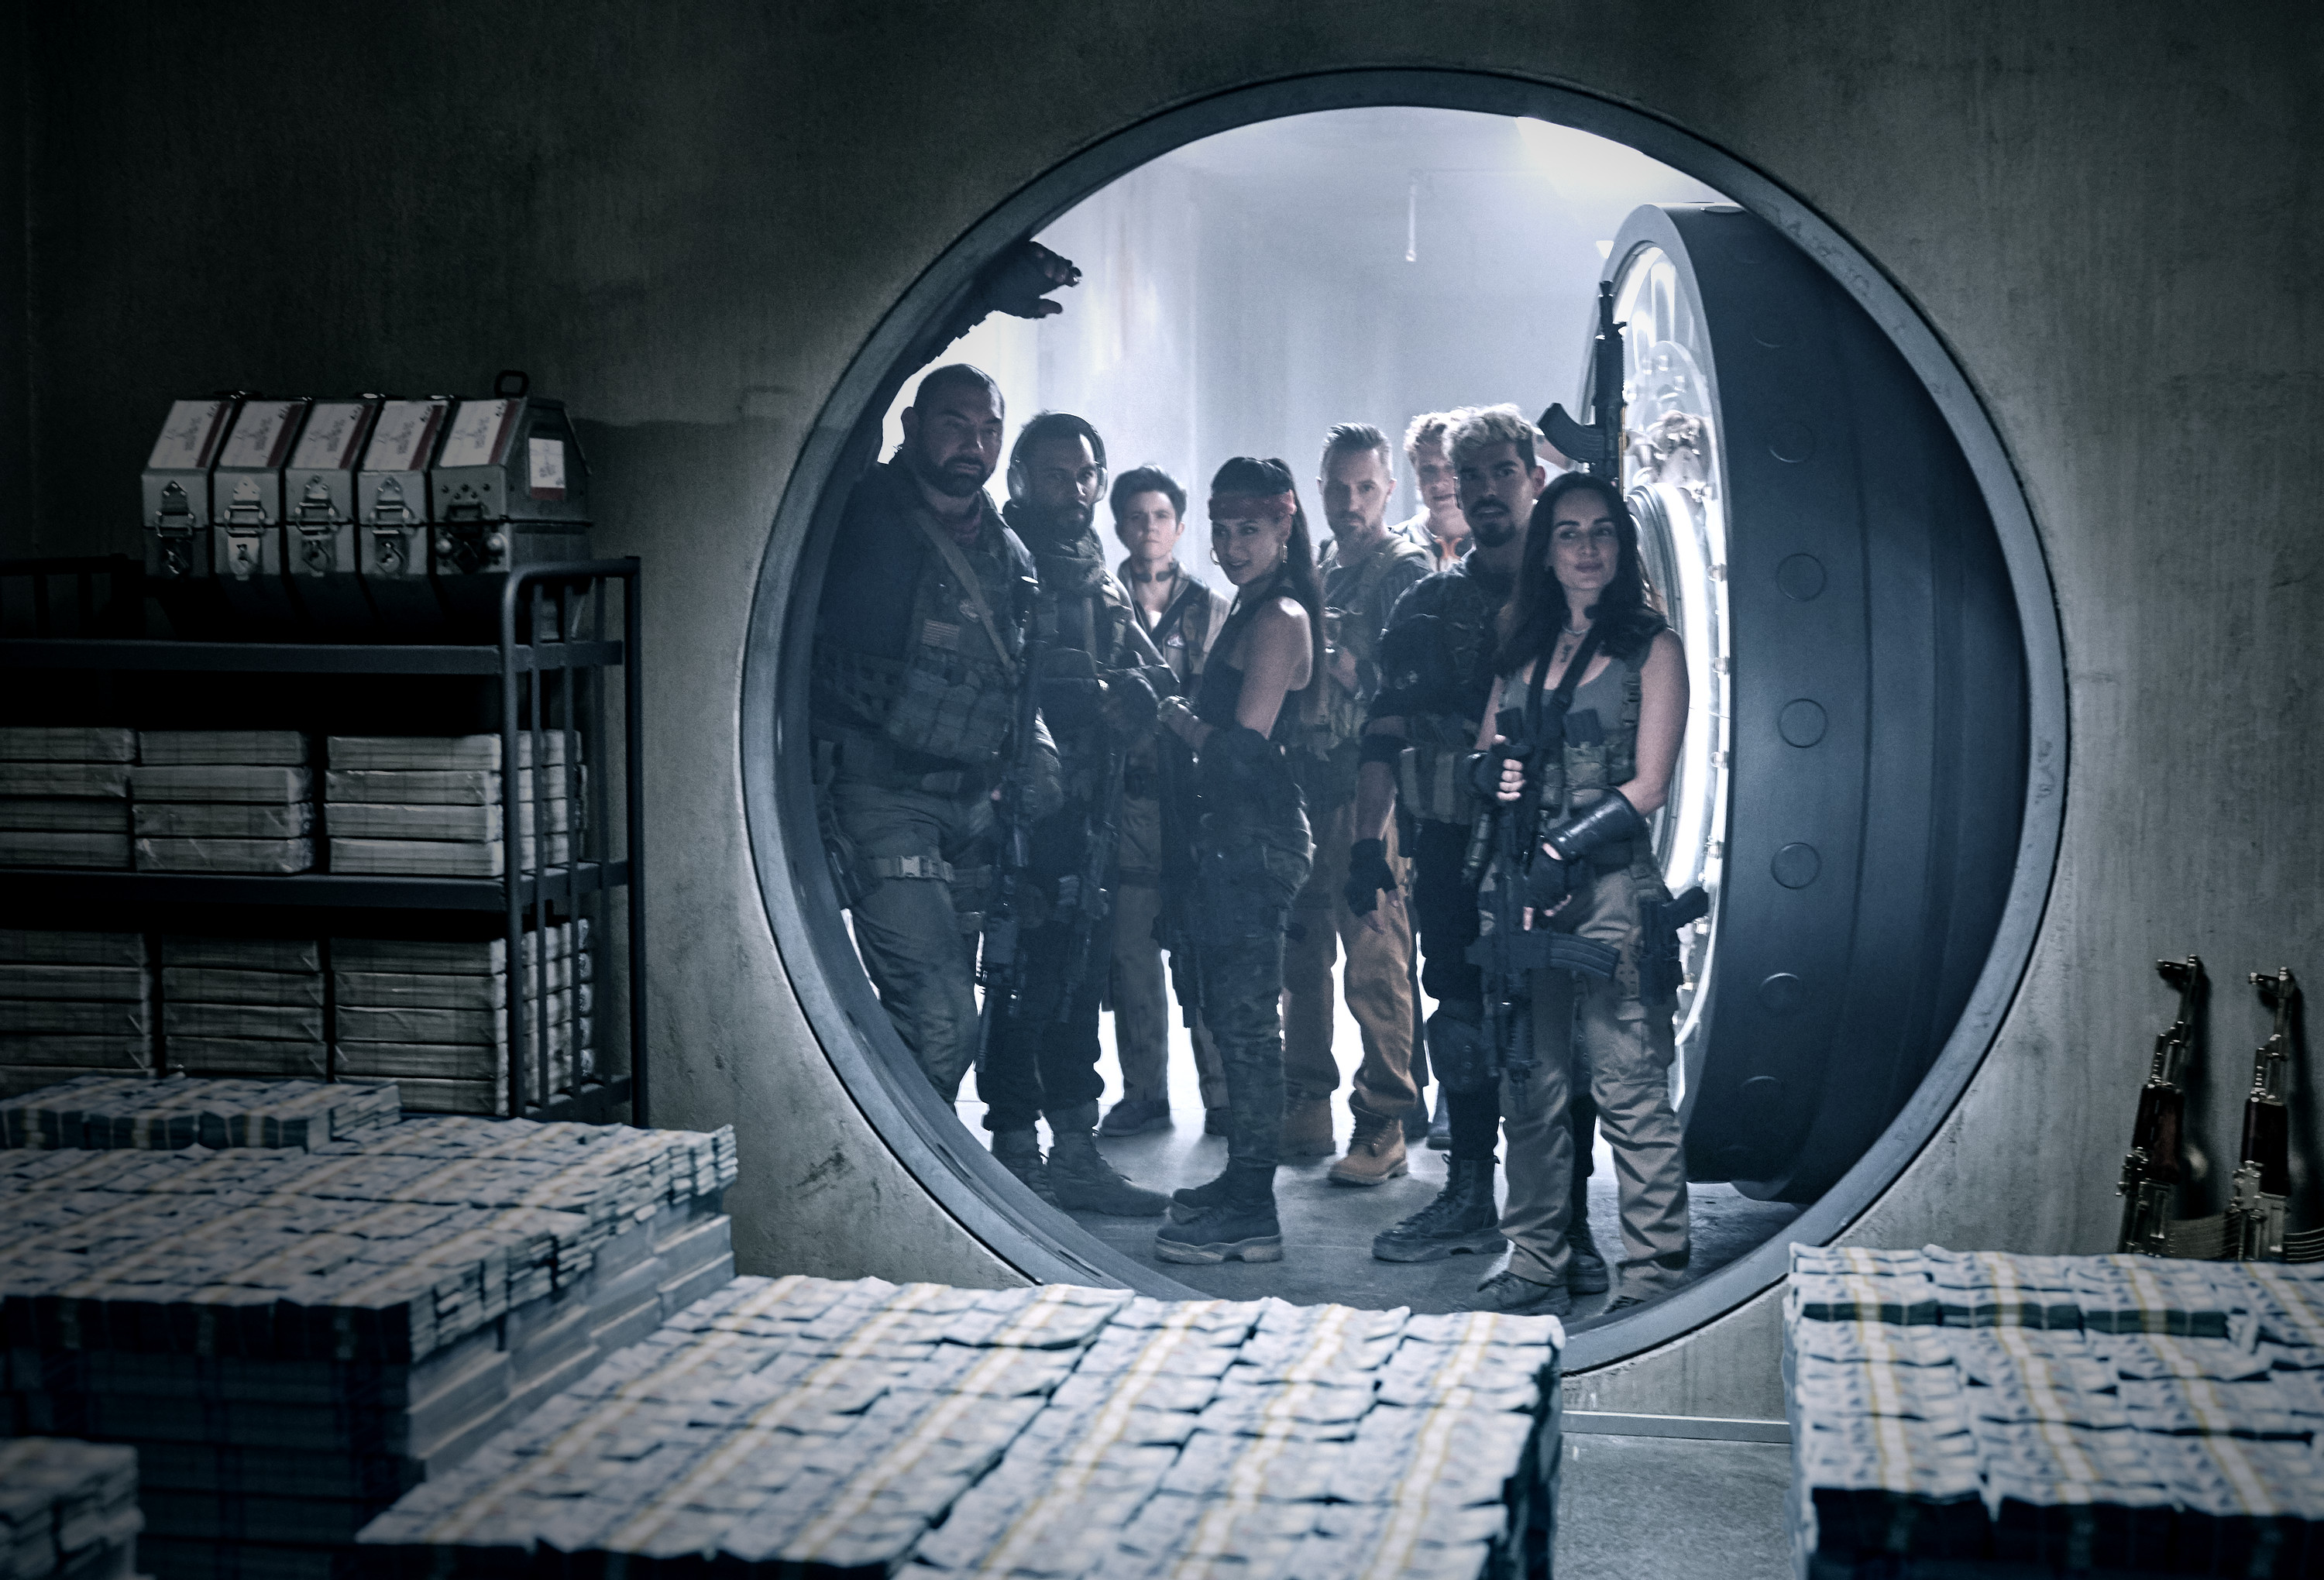 Watch The First Trailer For Zack Snyder's 'Army of The Dead'